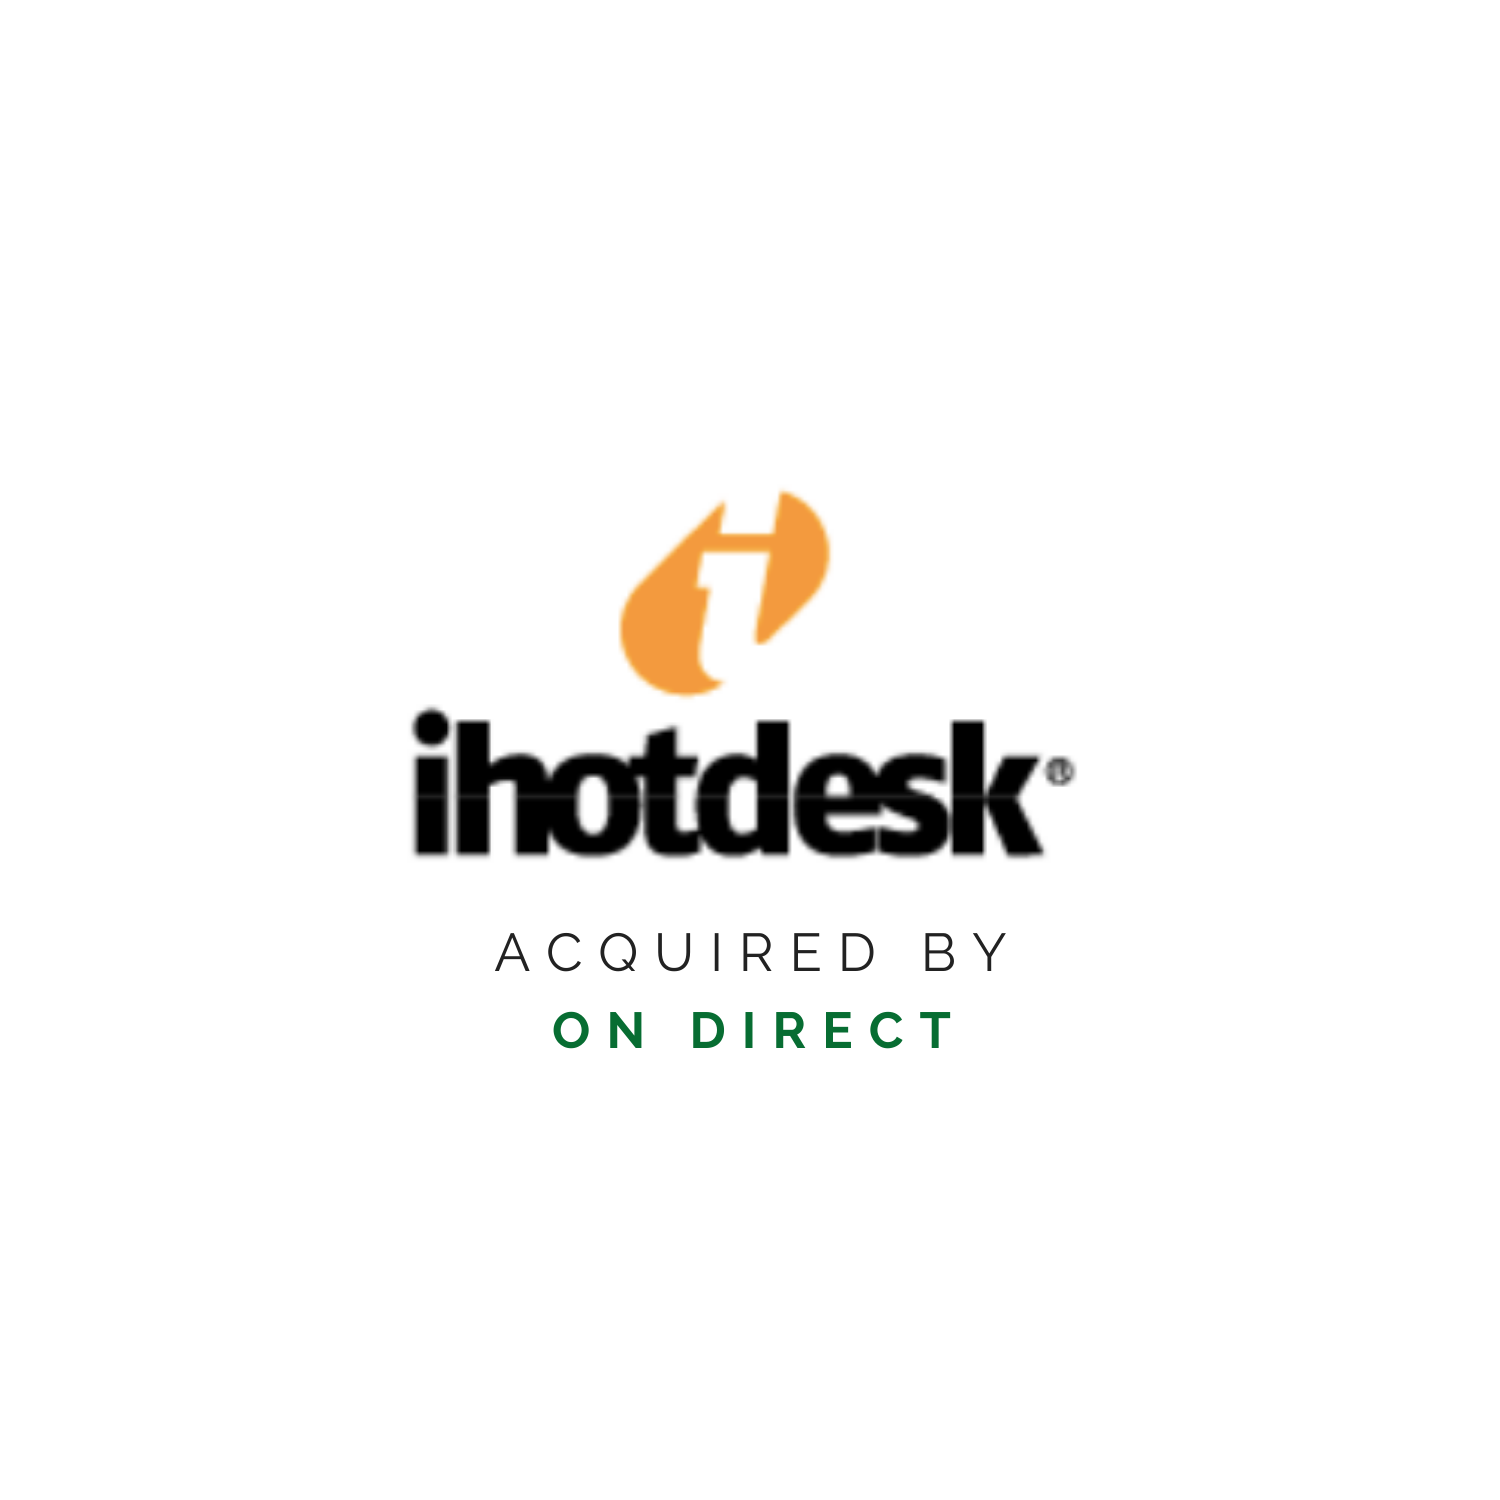 Sale of IT Support & Hosted Services Company